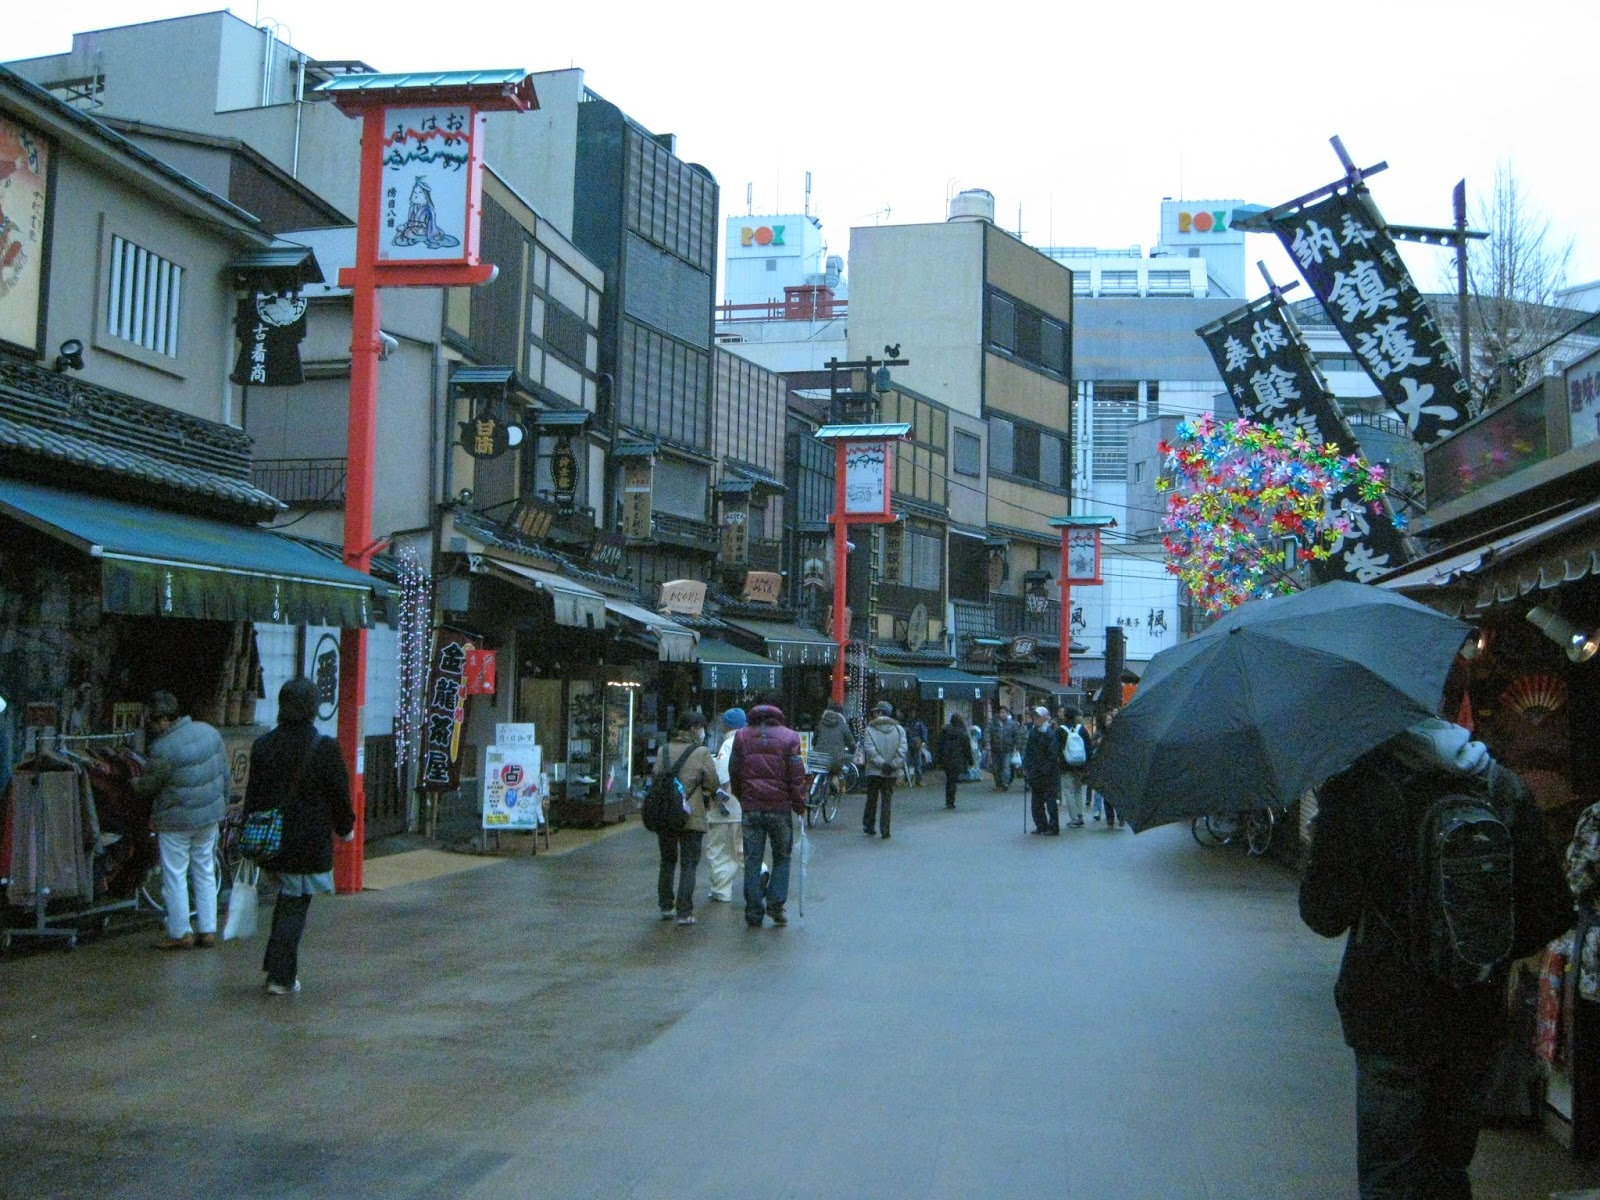 Tokyo - The streets of Asakusa look like something from centuries past